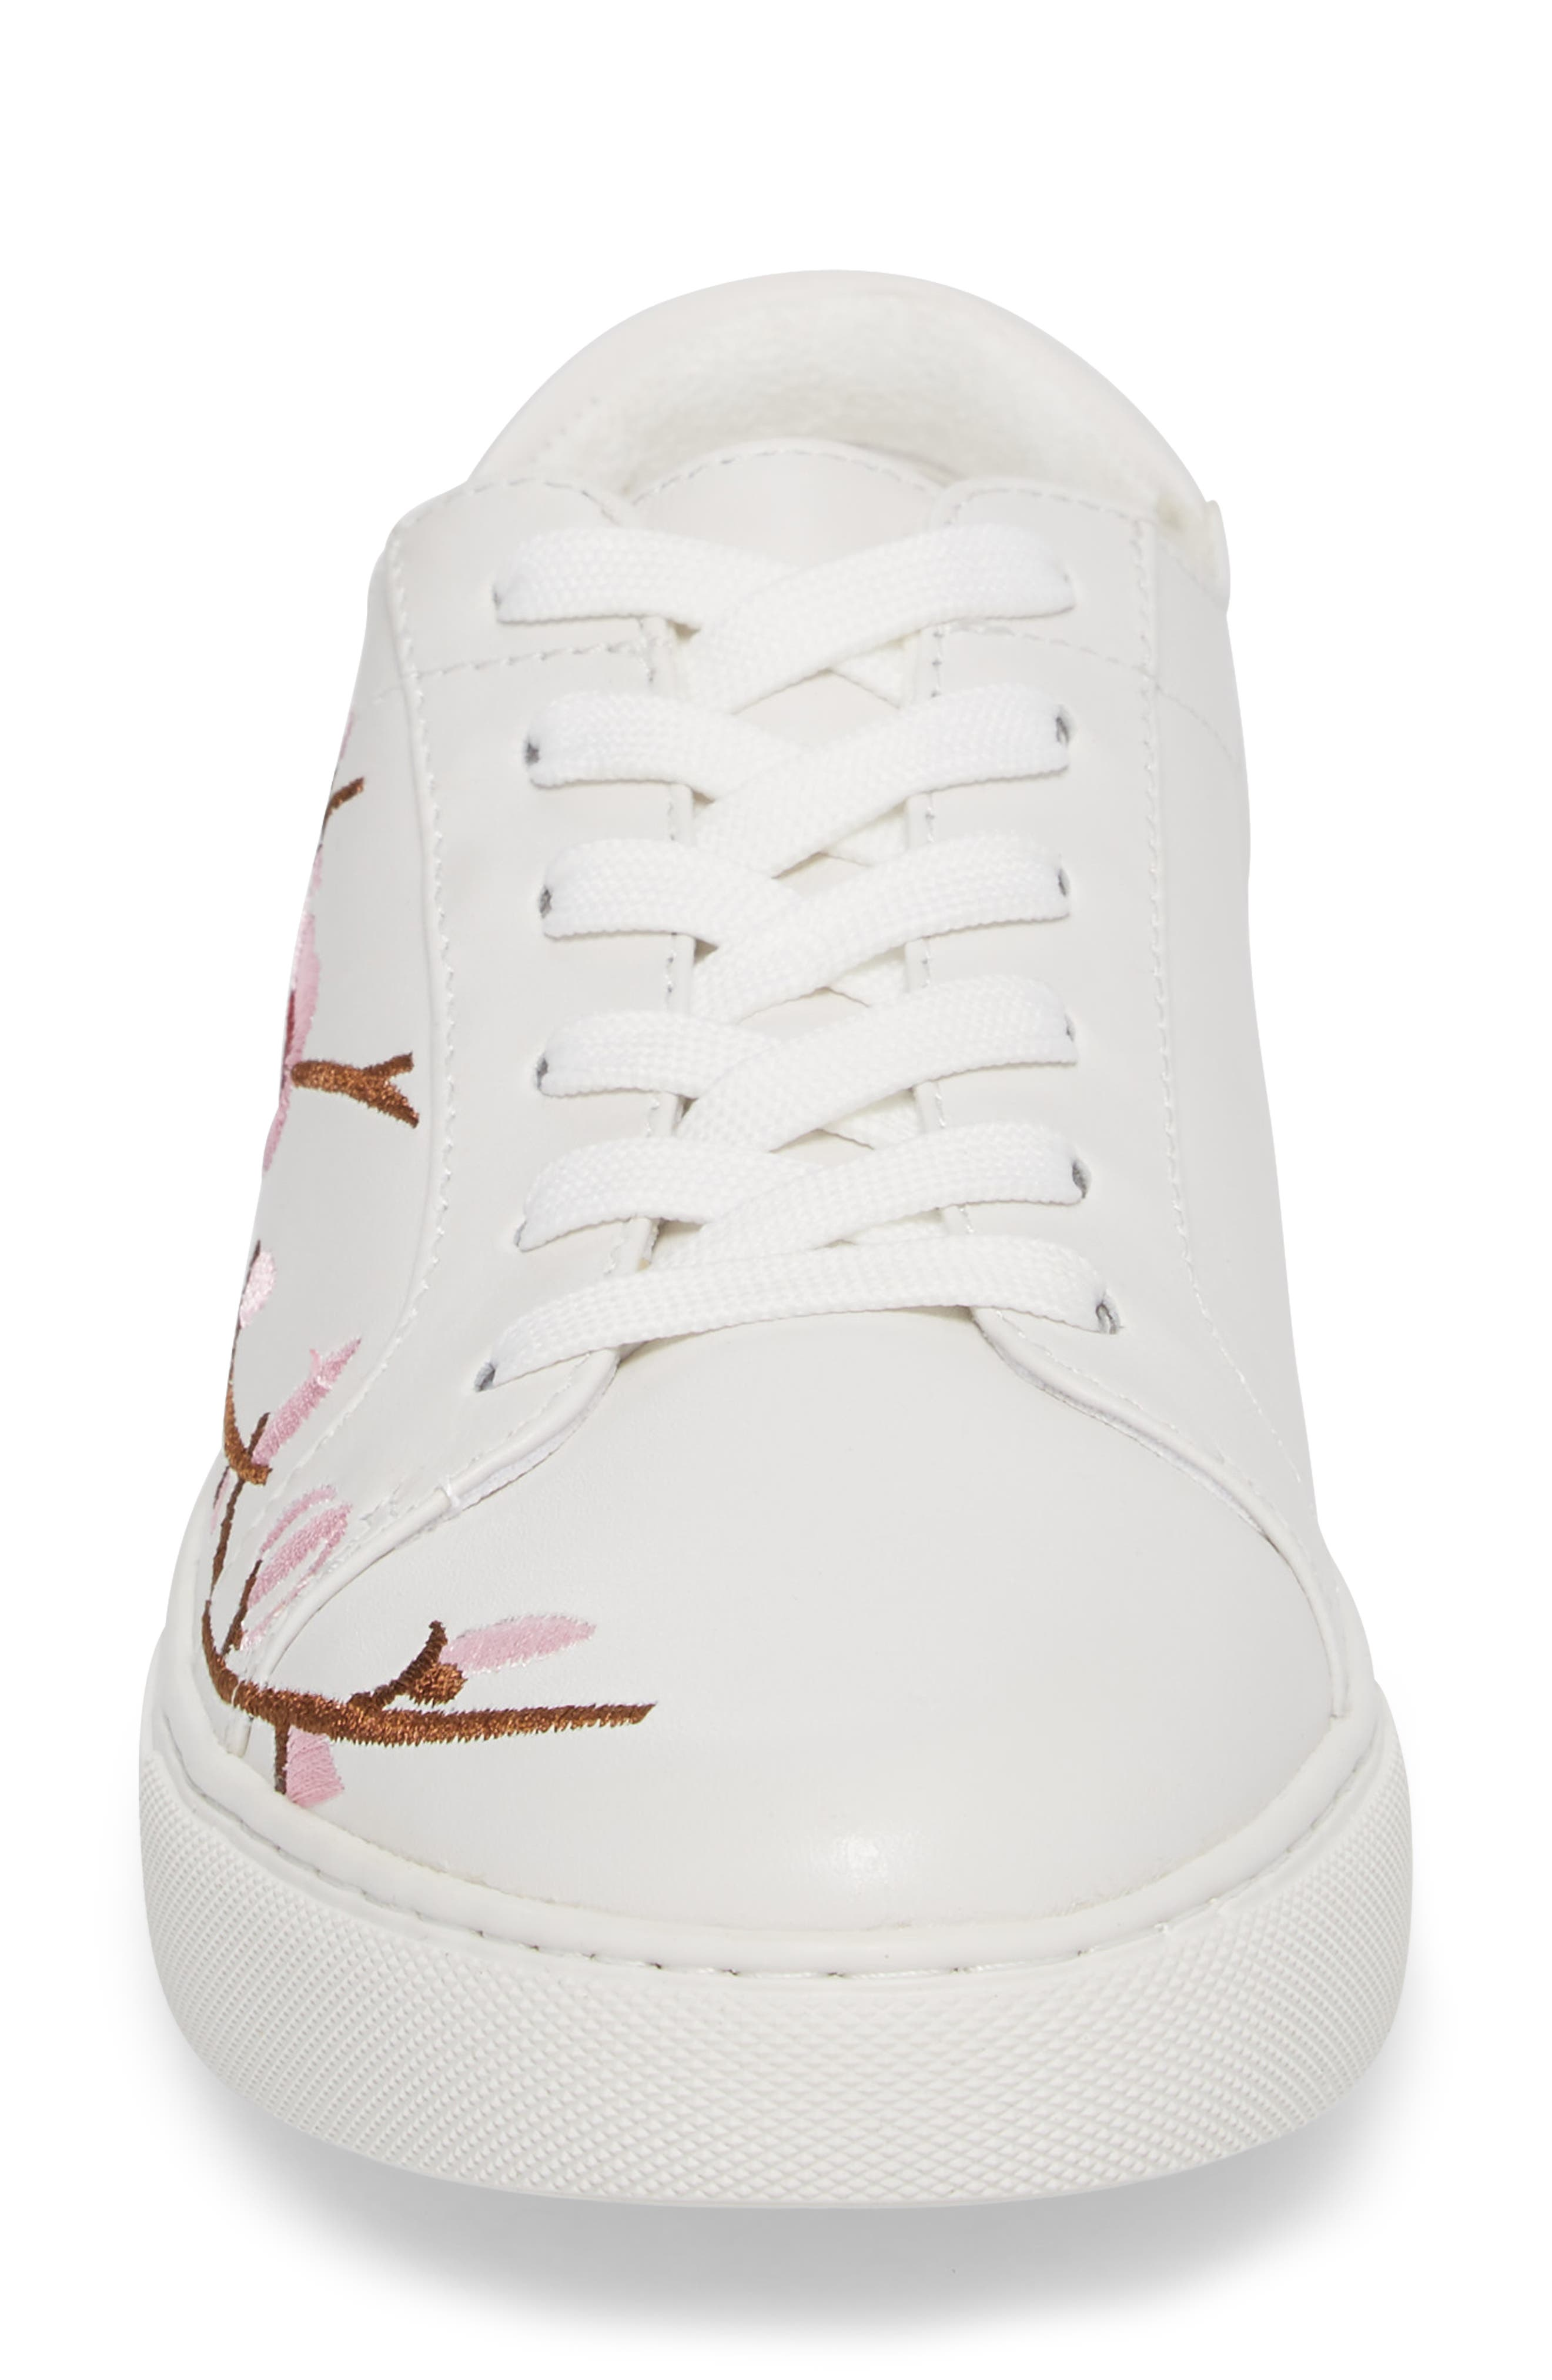 Kam Blossom Embroidered Sneaker,                             Alternate thumbnail 4, color,                             White Leather